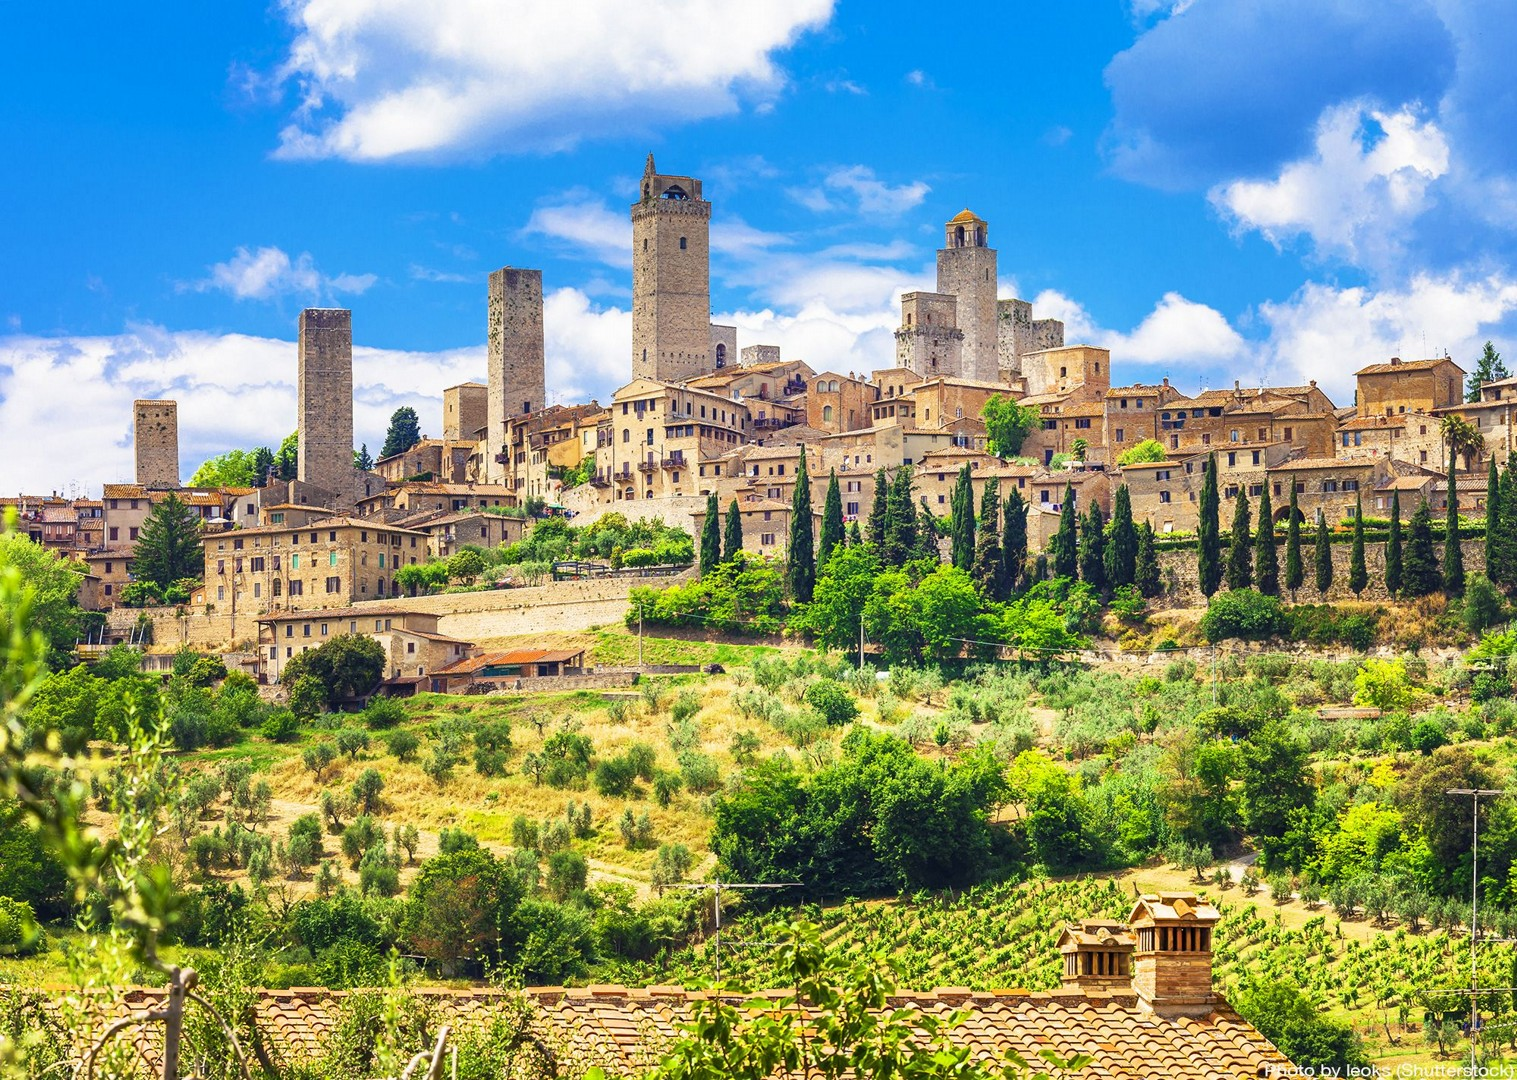 san-giminiano-italy-tuscany-leisure-cycling-culture.jpg - Italy - Tuscany - Giro della Toscana - Guided Road Cycling Holiday - Road Cycling